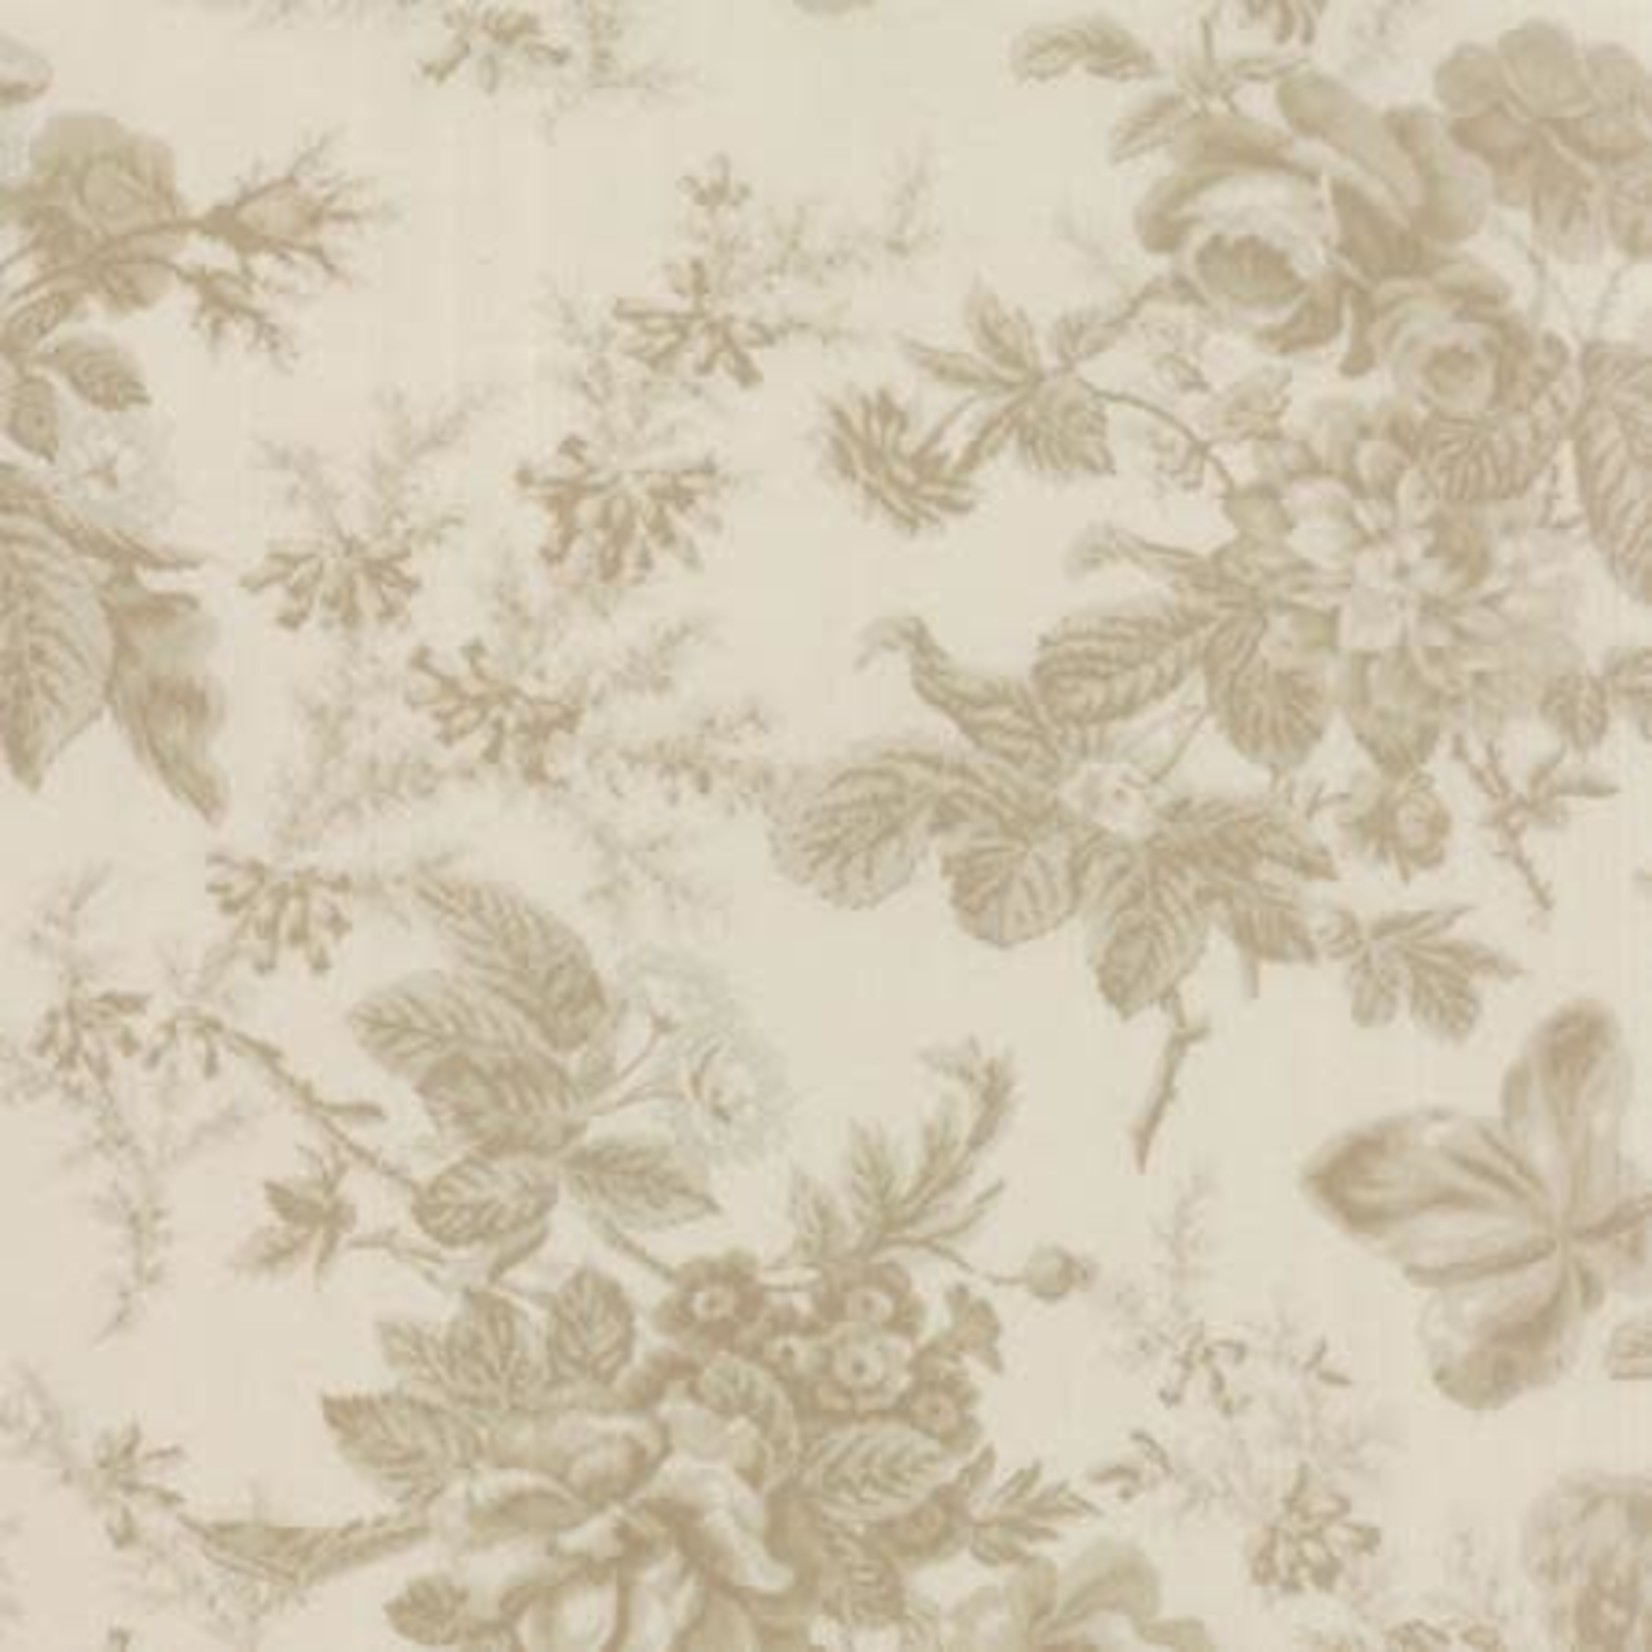 Moda Fabrics Laundry Basket Quilts - Cold Spell Prints - Natural